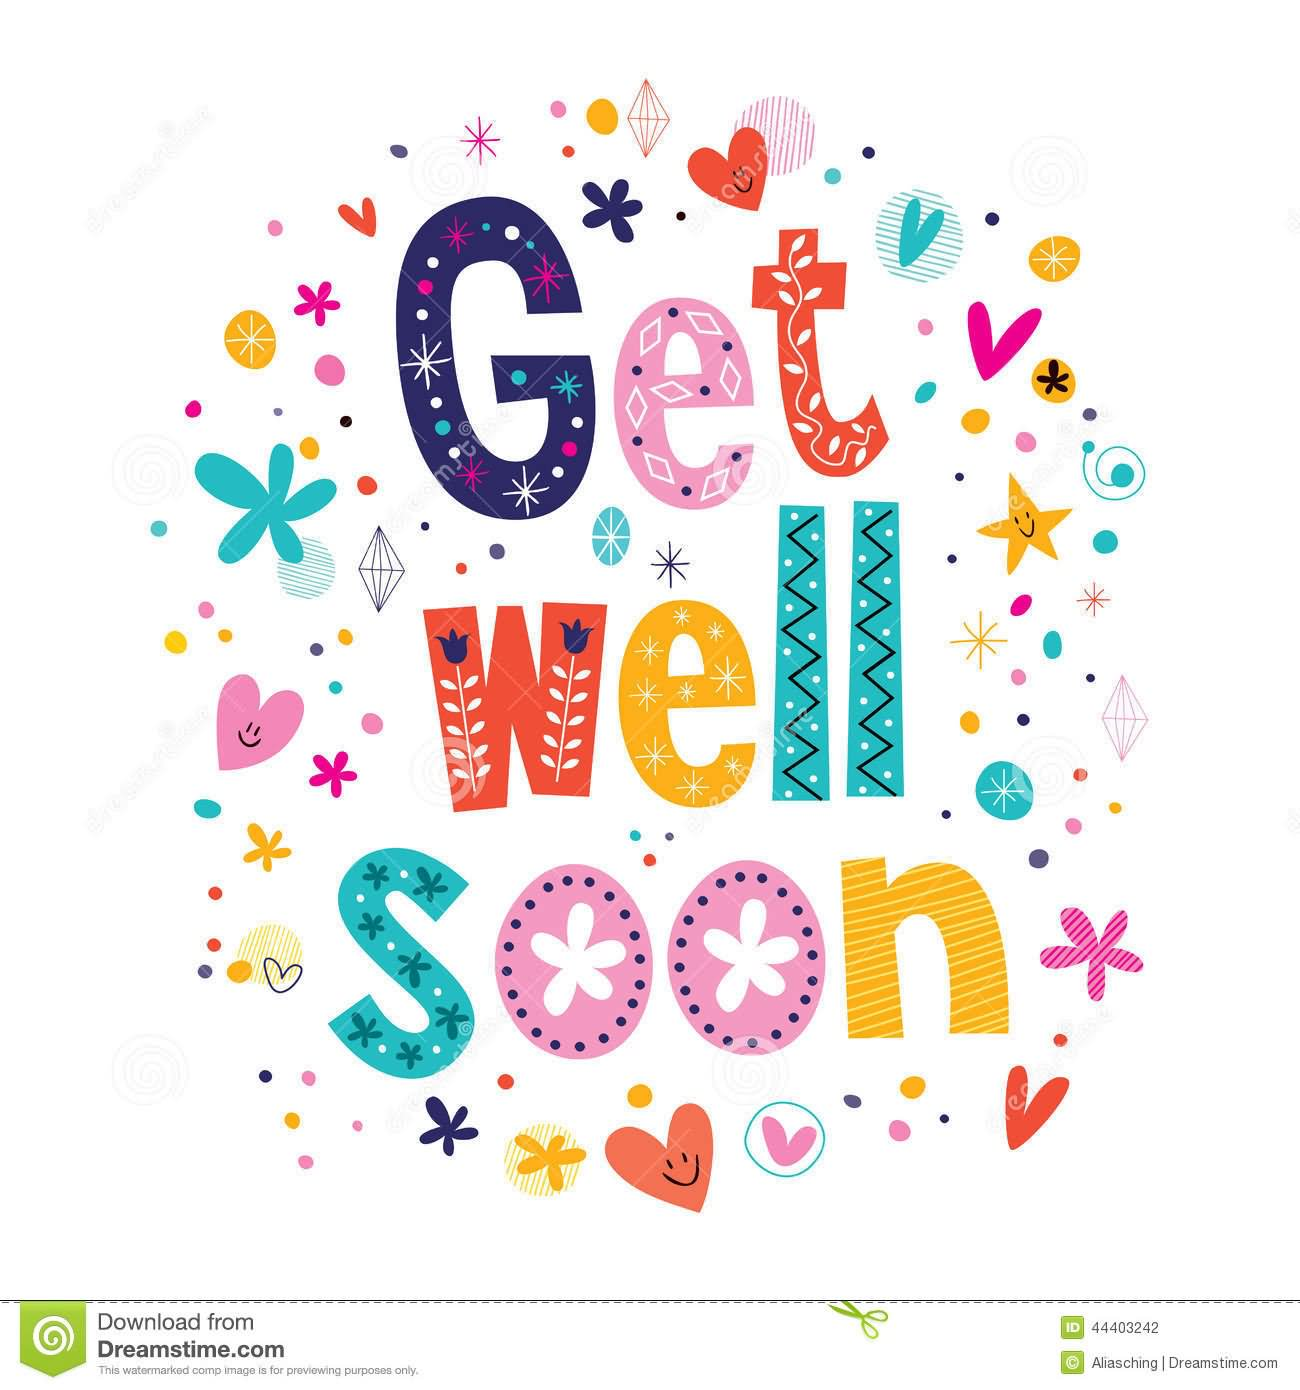 Get Well Soon Clipart Pictures - Clipart-Get well soon clipart pictures - ClipartFest-16